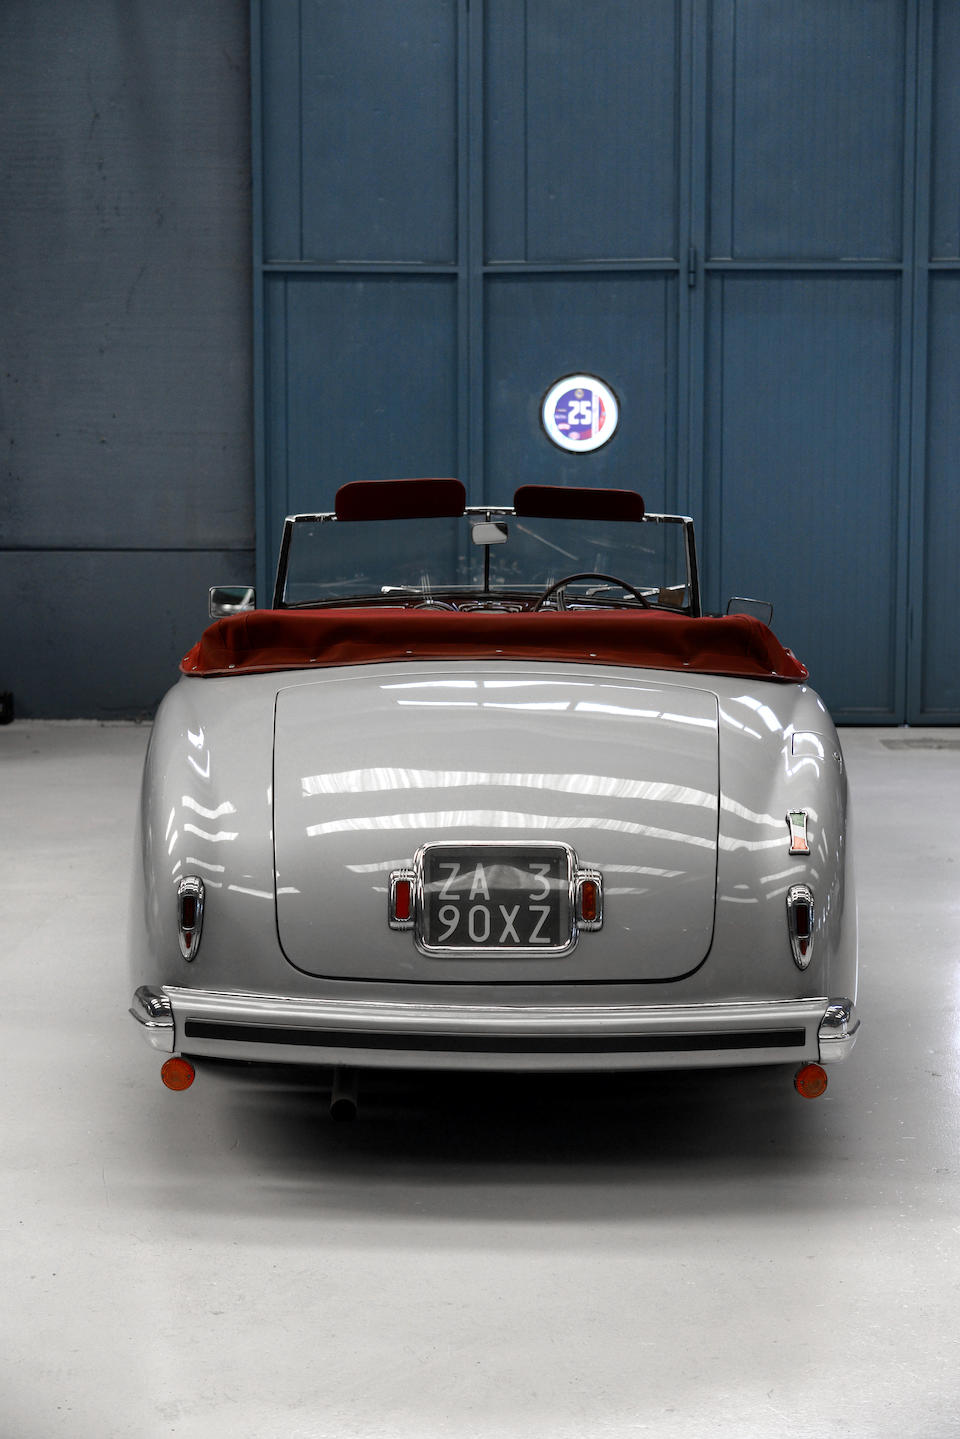 1947 Alfa Romeo  6C 2500 Sport Cabriolet 'Extralusso'  Chassis no. 915335